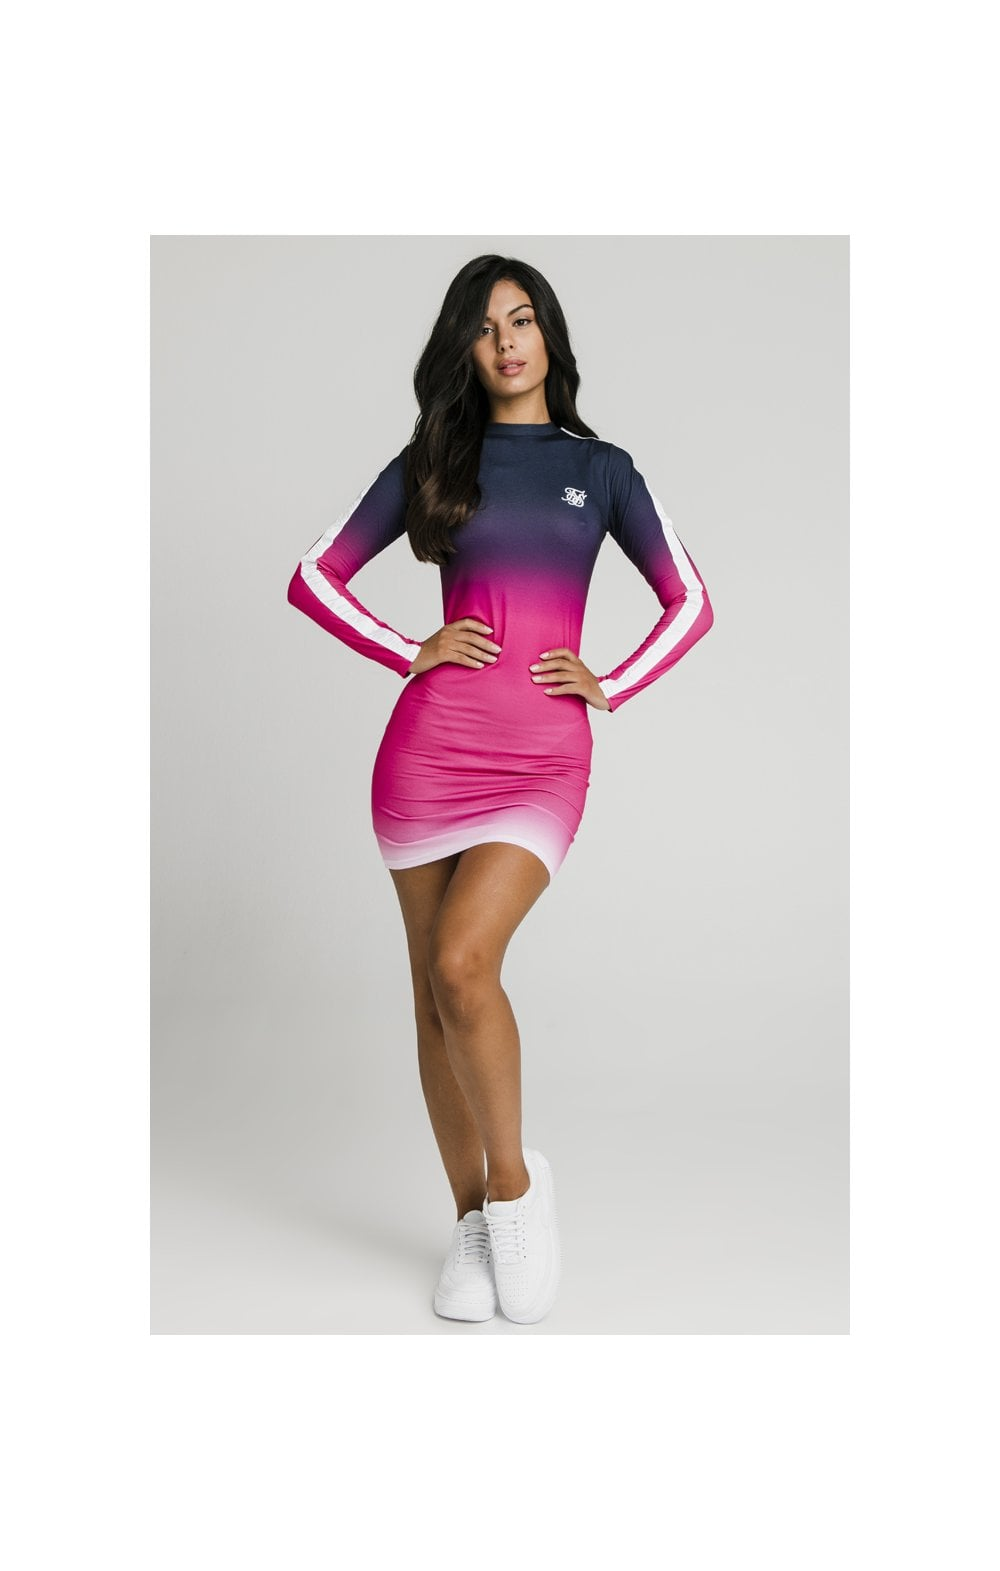 SikSilk Tape Fade Bodycon Dress - Navy, Pink & White (5)